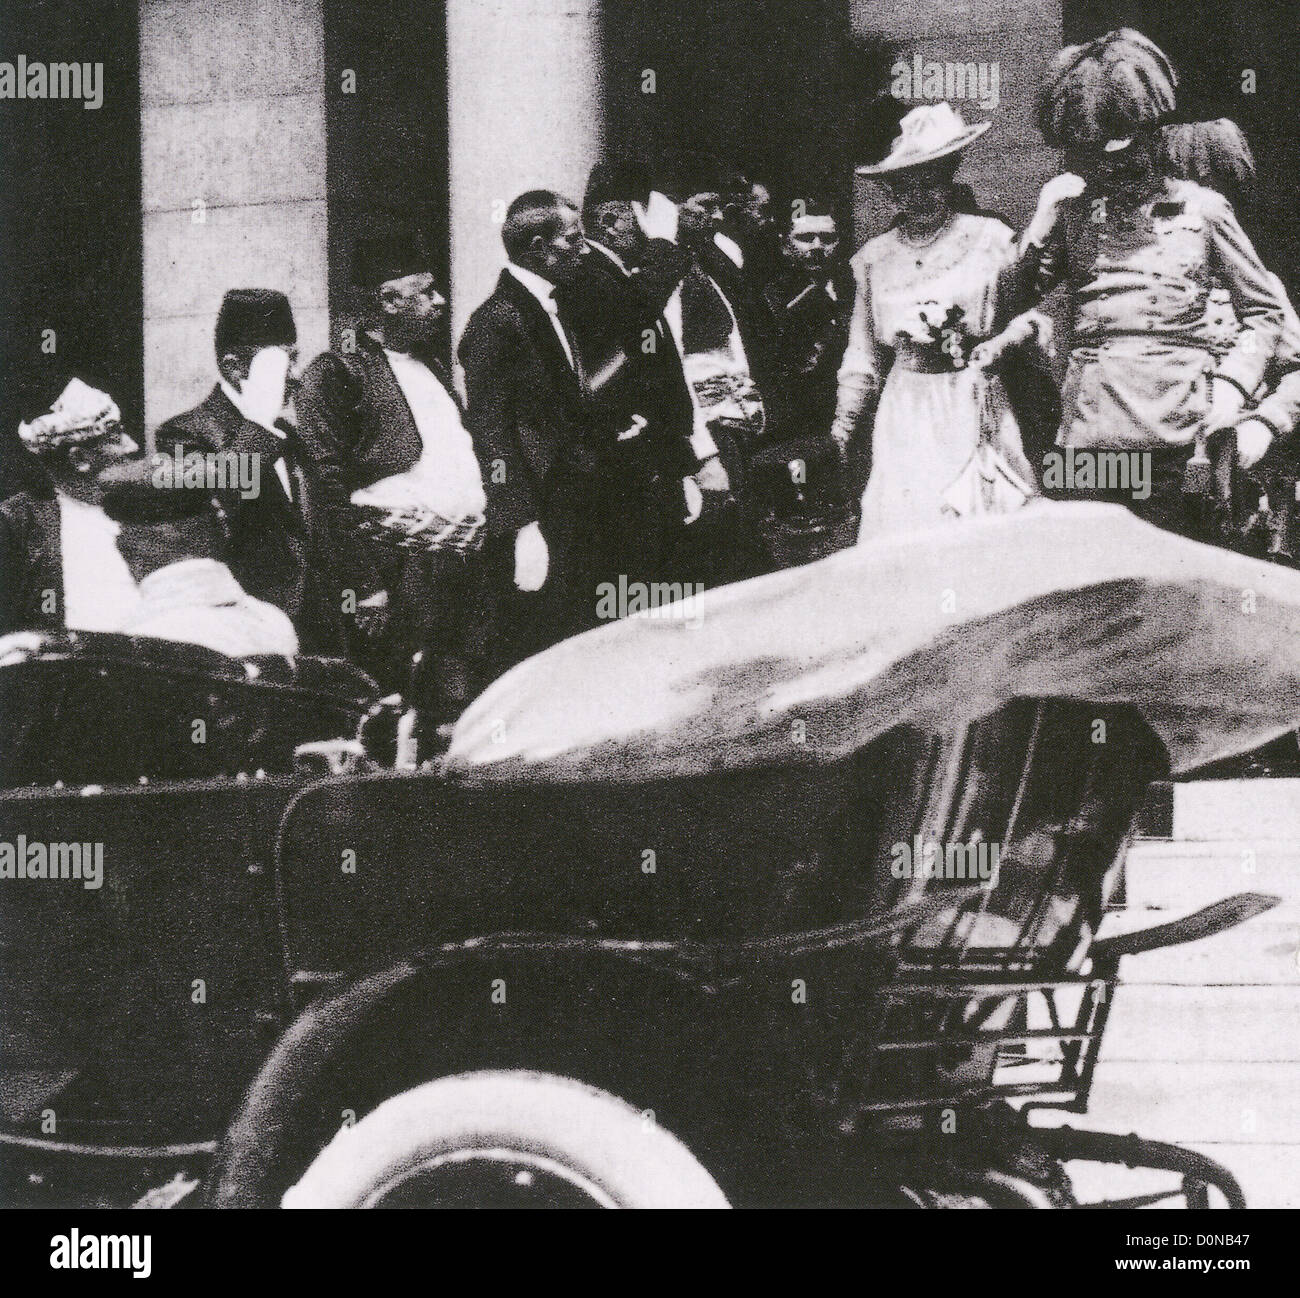 ARCHDUKE FRANZ FERDINAND and his wife Duchess Sophie leave Sarajevo town halls before their assassination on 28 - Stock Image